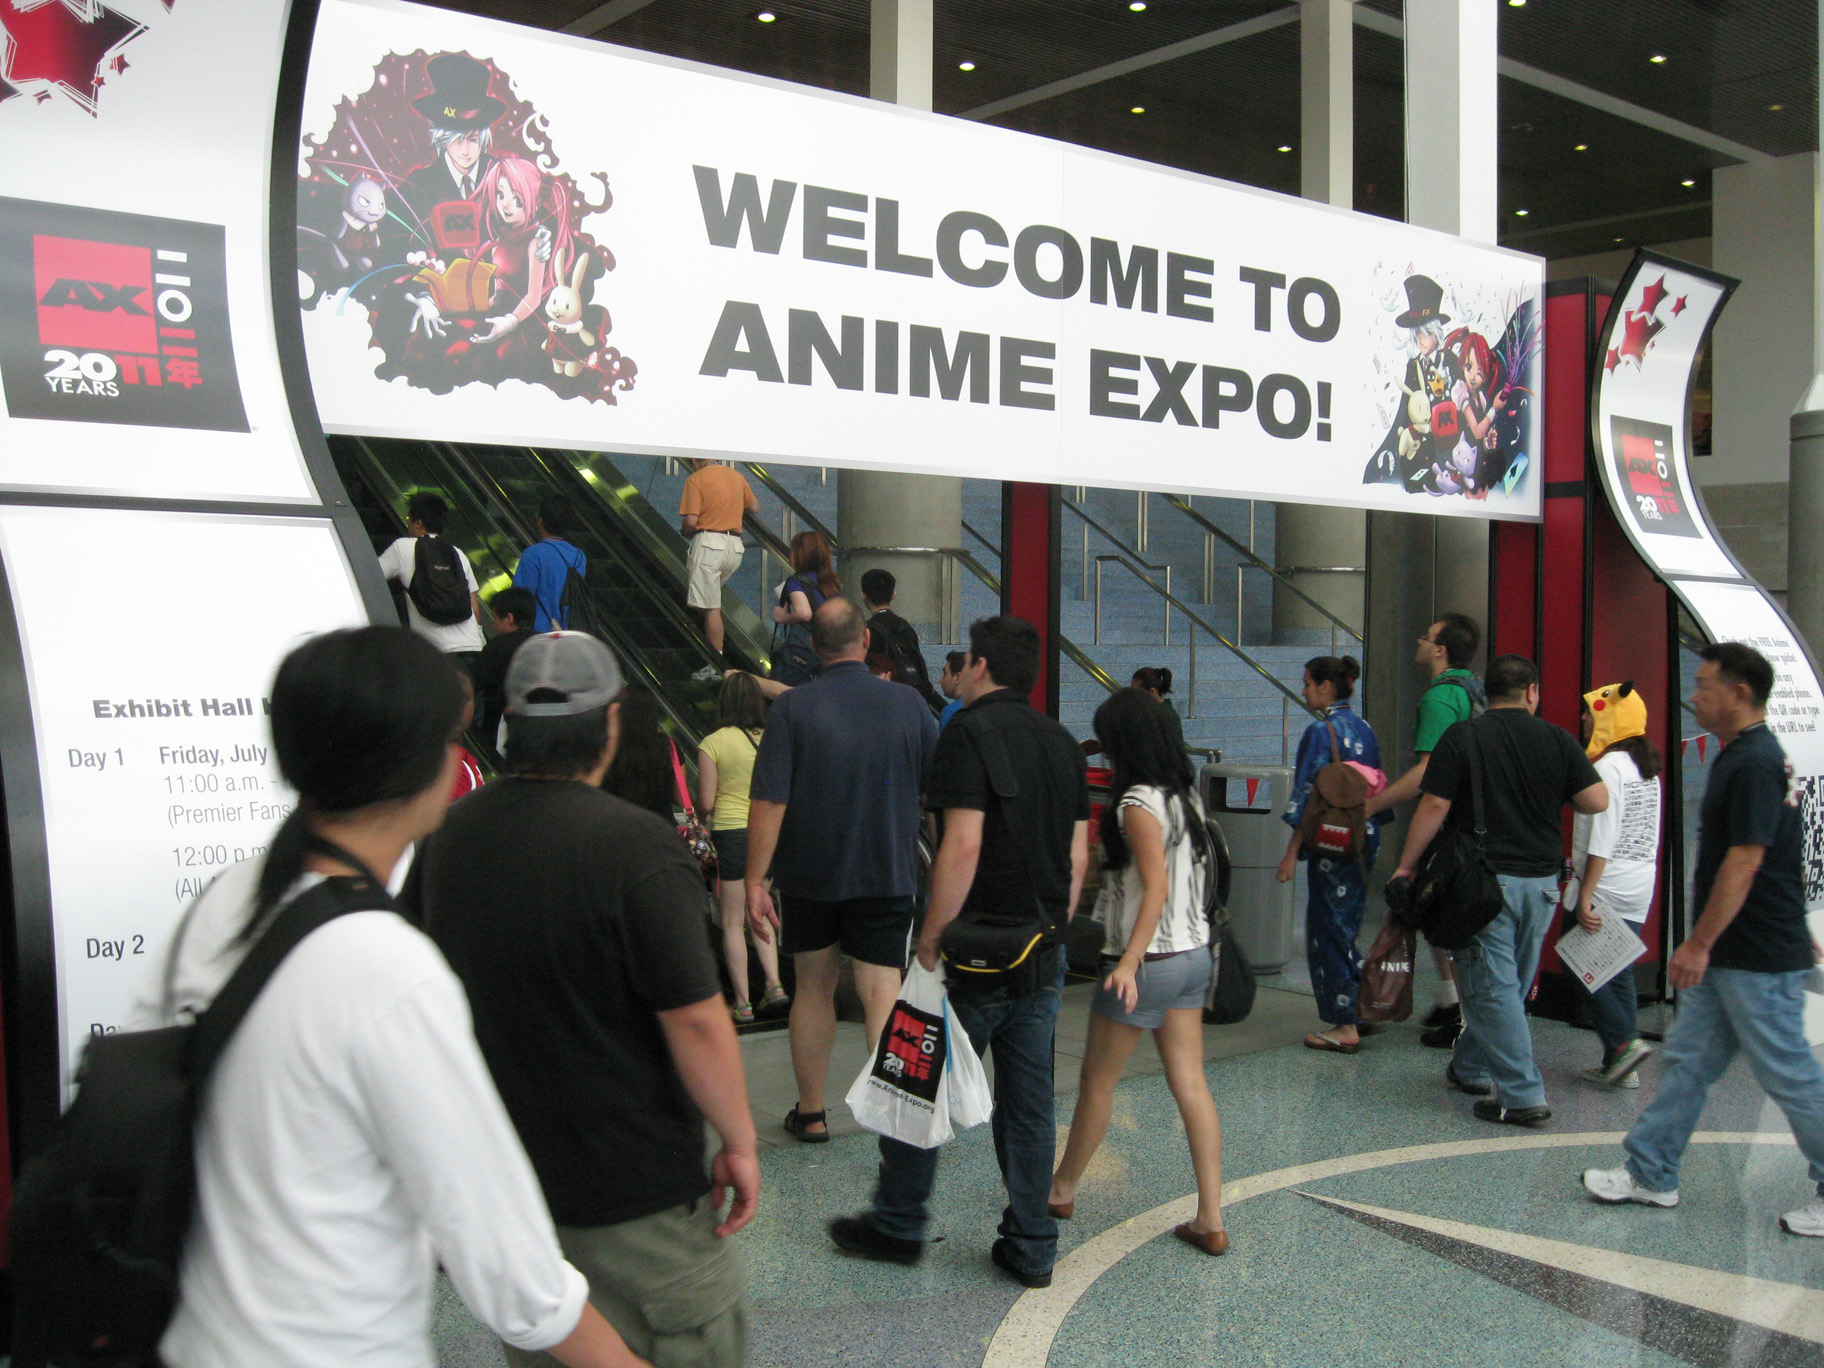 Welcome-to-Anime-Expo-2011.jpg